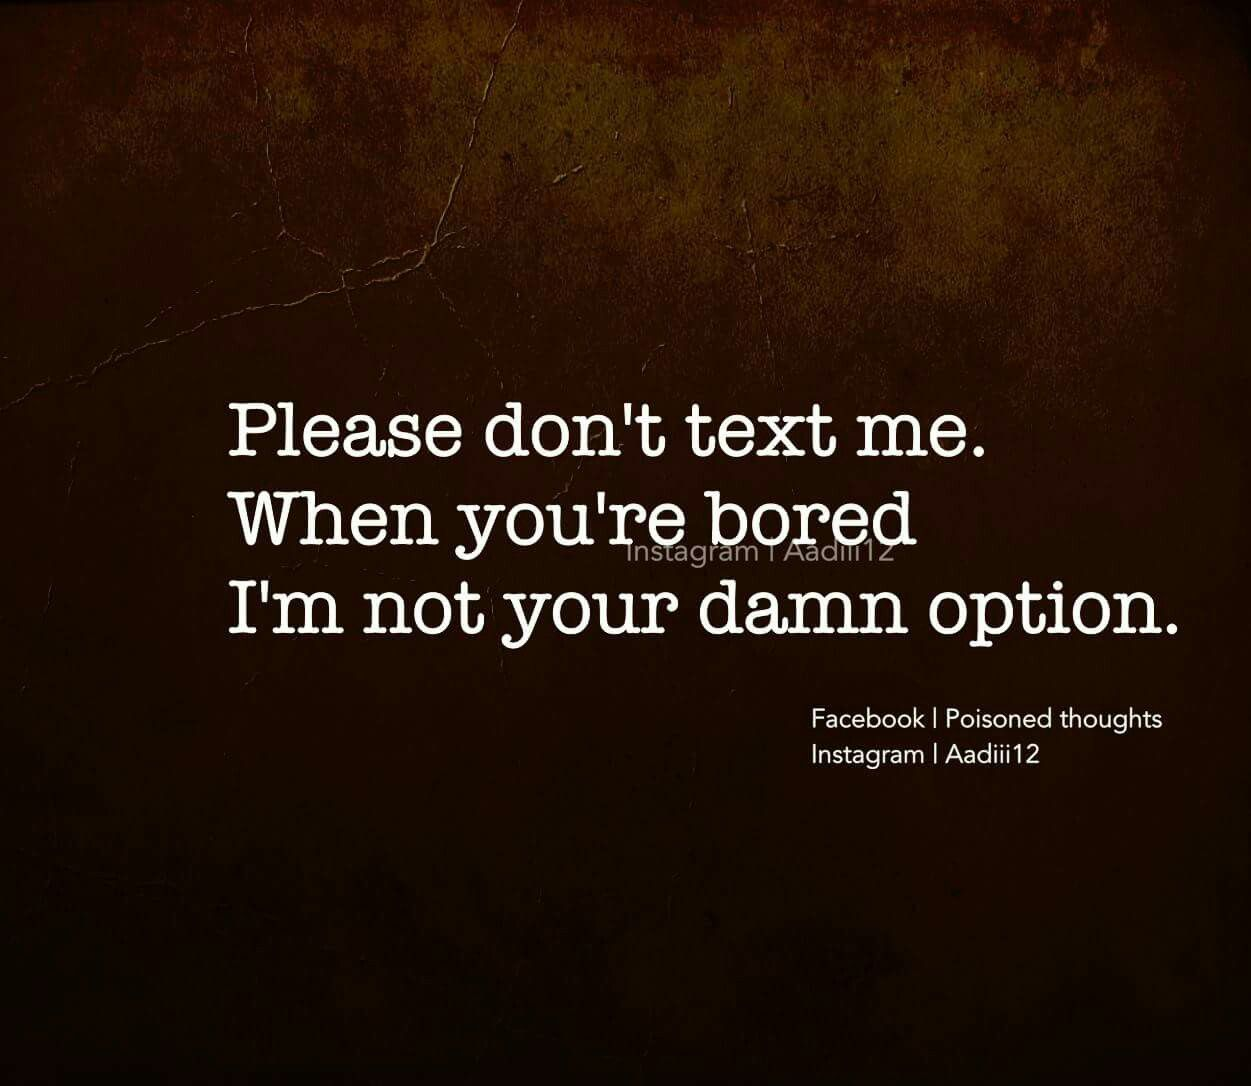 Wait What Yes Text Me When You Re Bored But Not Only When You Re Bored Bored Quotes Sensible Quotes My Diary Quotes